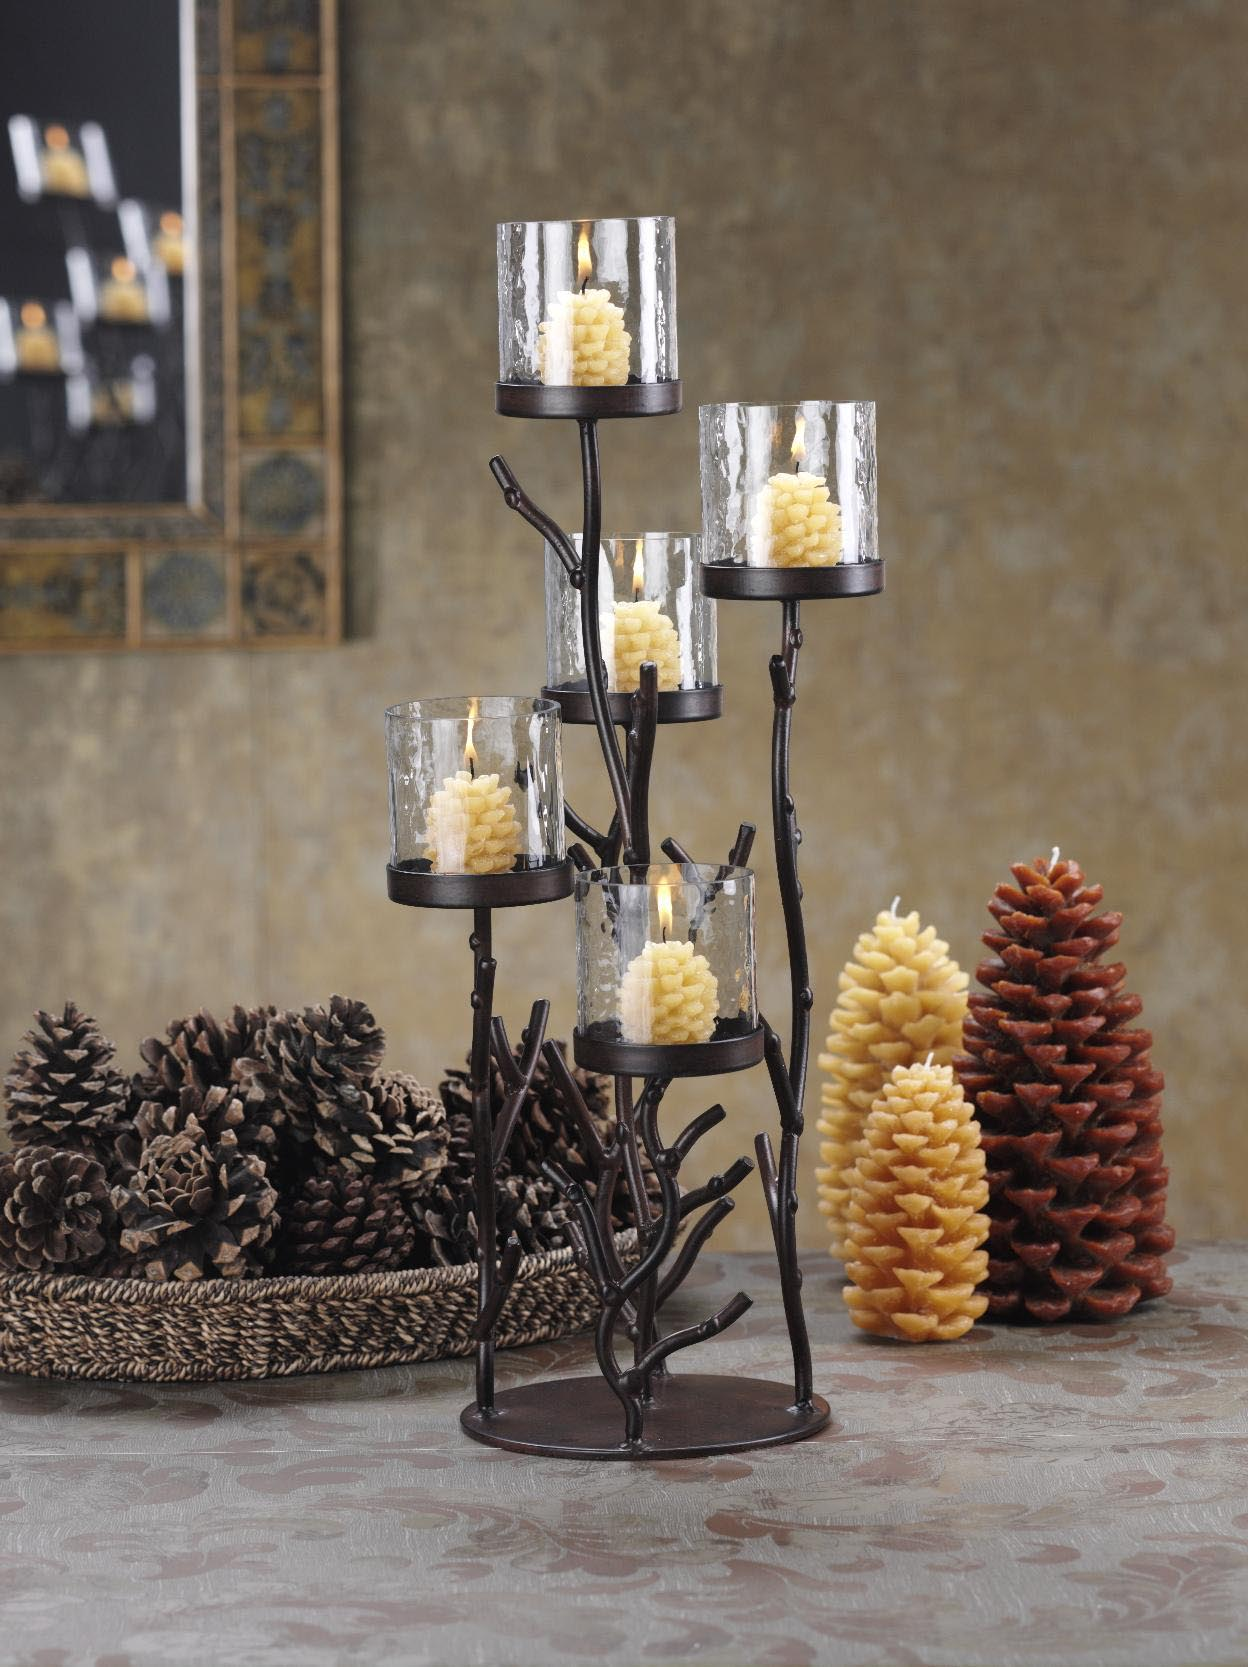 Iron Candle Stand Designs : Wrought iron candle holders for fireplace designs